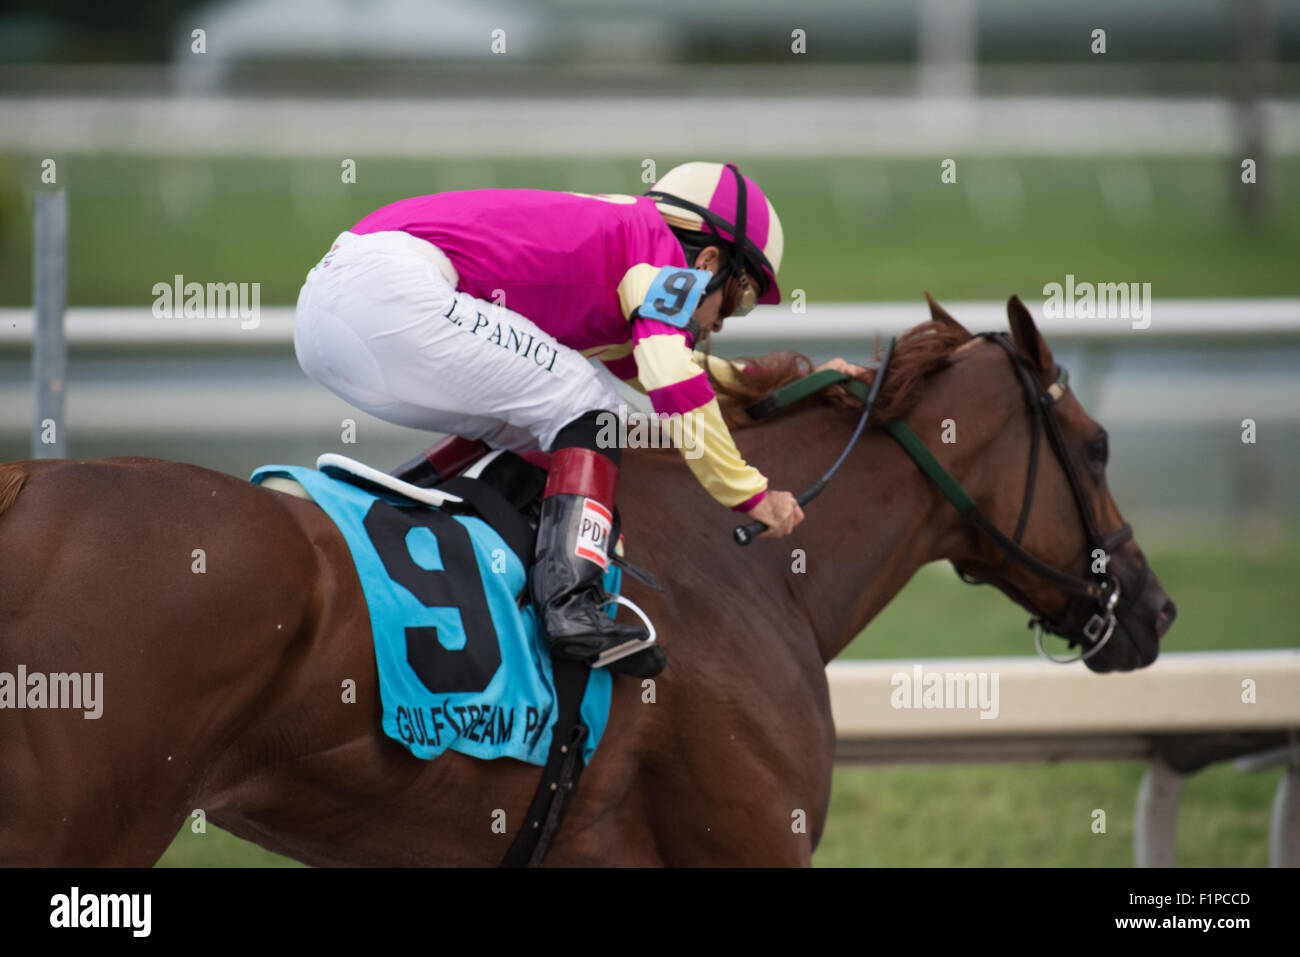 Horse and rider in race at Gulfstream Park, Florida - Stock Image